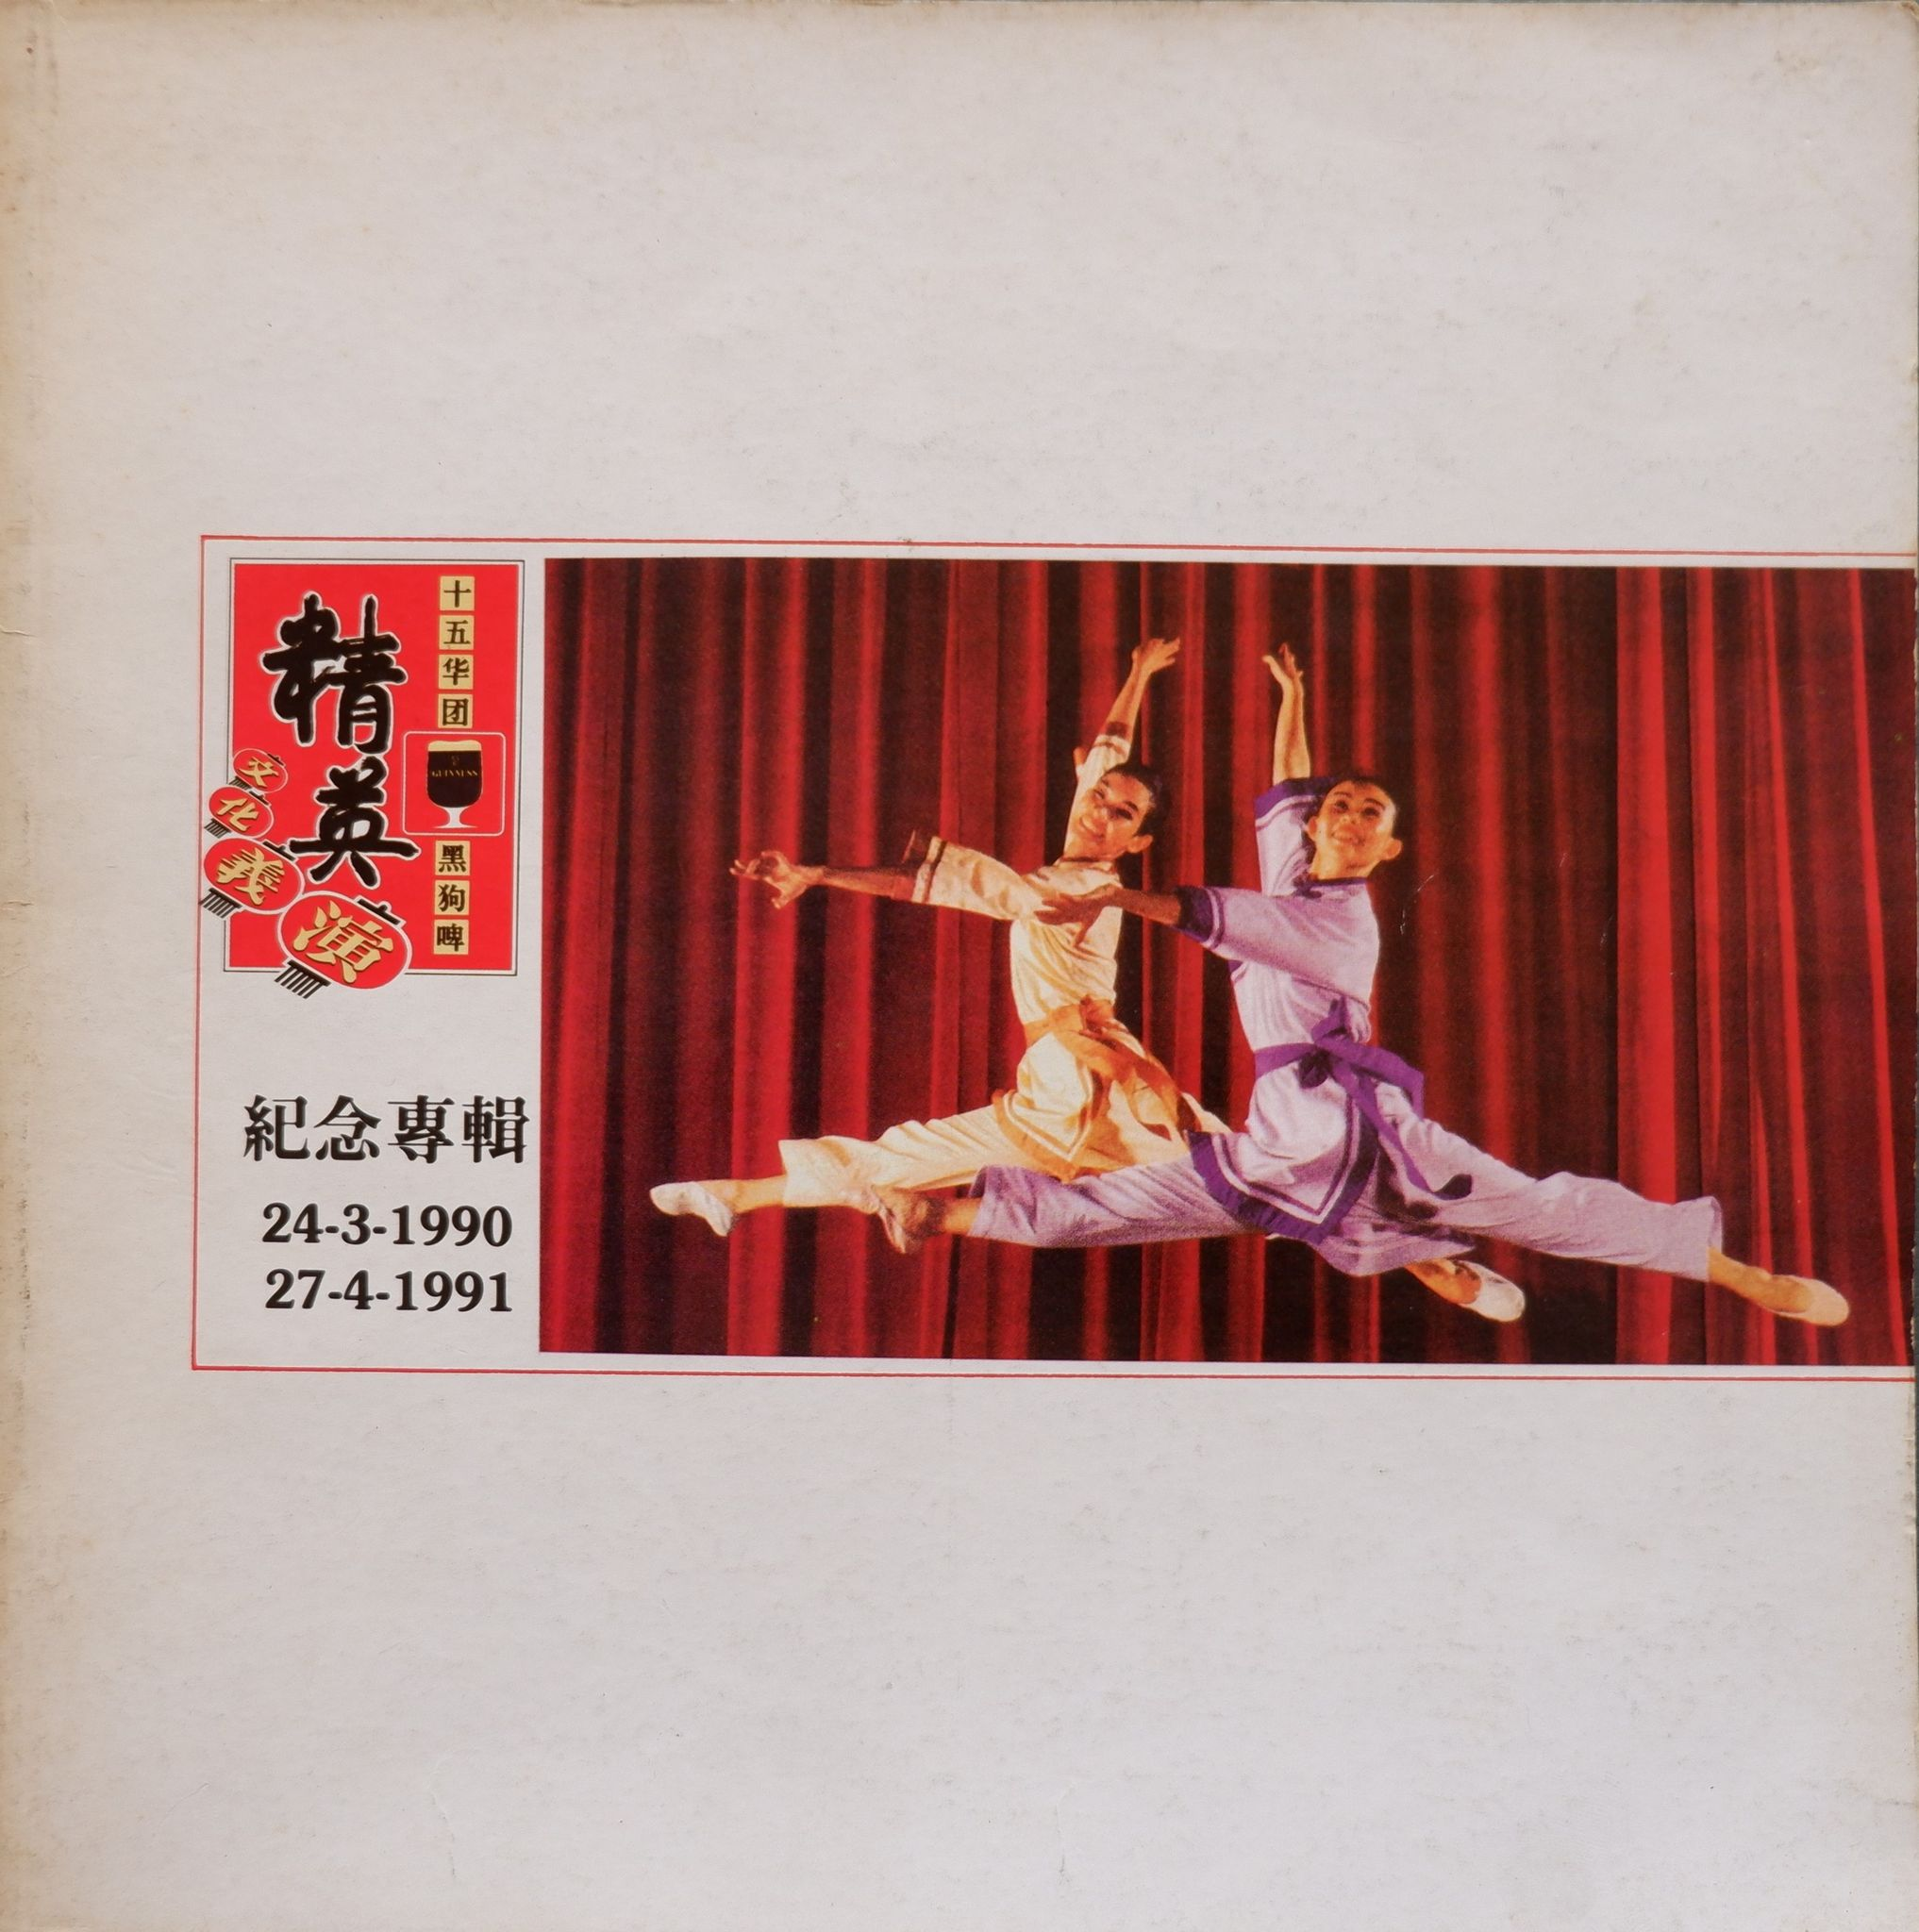 1990 Jing Ying Cultural Charity Performance Cover